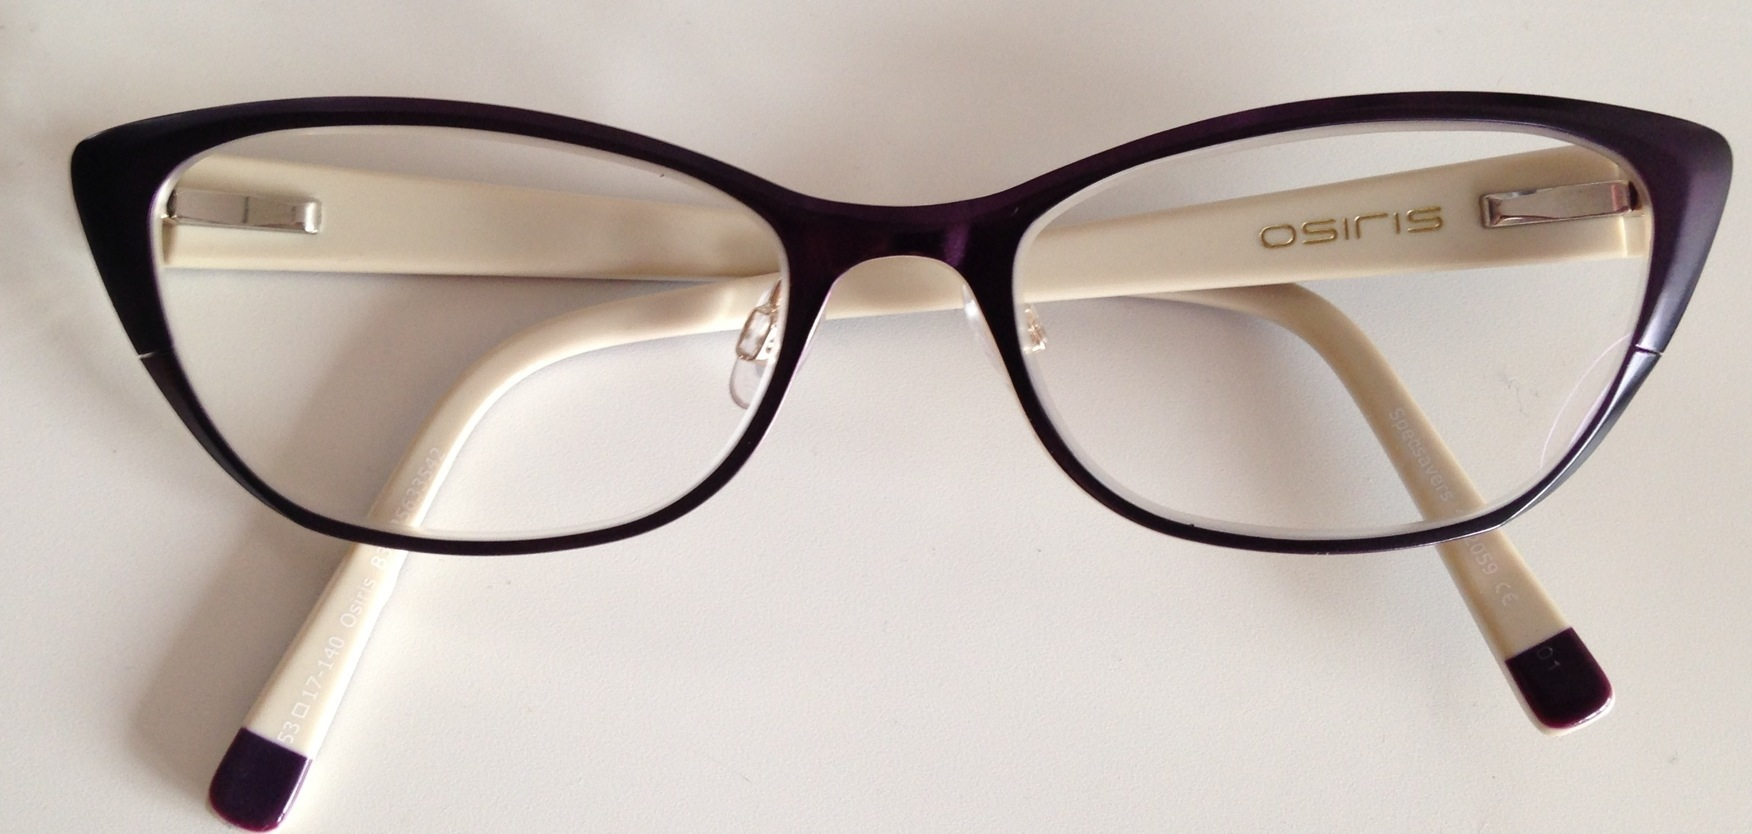 Broken Glasses Frame Specsavers : Product review: Osiris glasses from Specsavers So Many ...